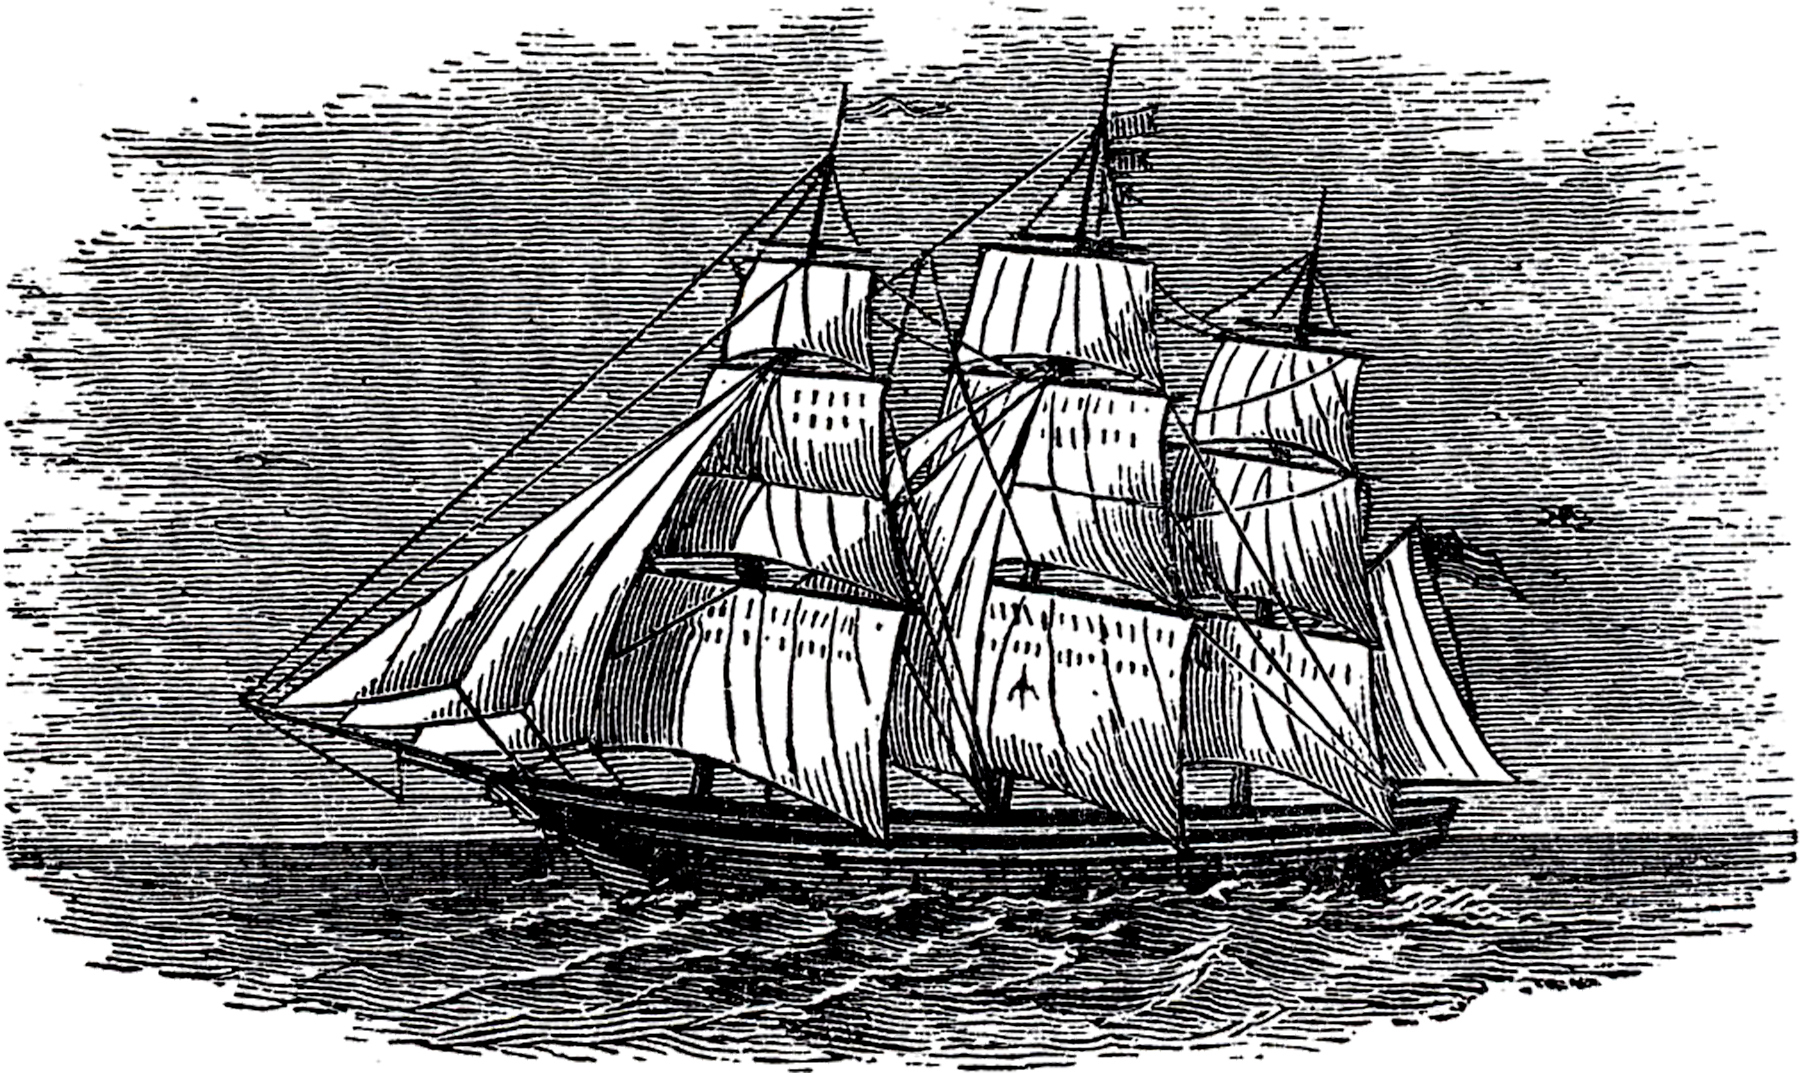 Antique Ship Engraving! - The Graphics Fairy